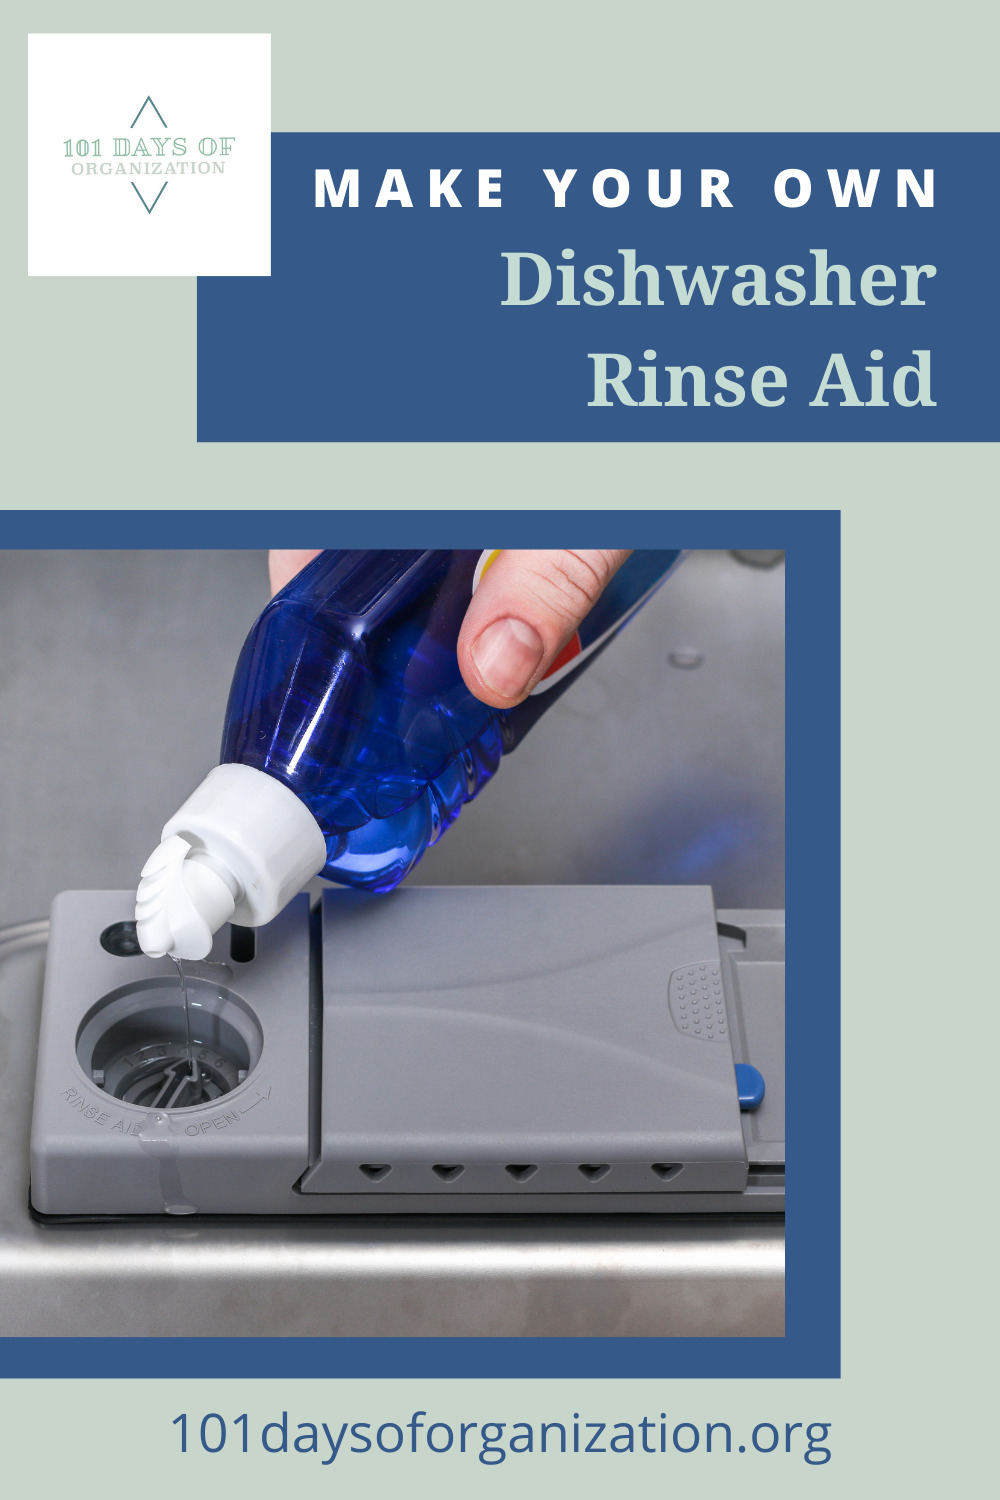 101daysoforganization.org is the best place to find cleaning and organization ideas you'll love. Don't miss out on the latest tricks for making mess-free living a breeze! Learn how you can make your own cleaners, like this DIY dishwasher rinse aid!